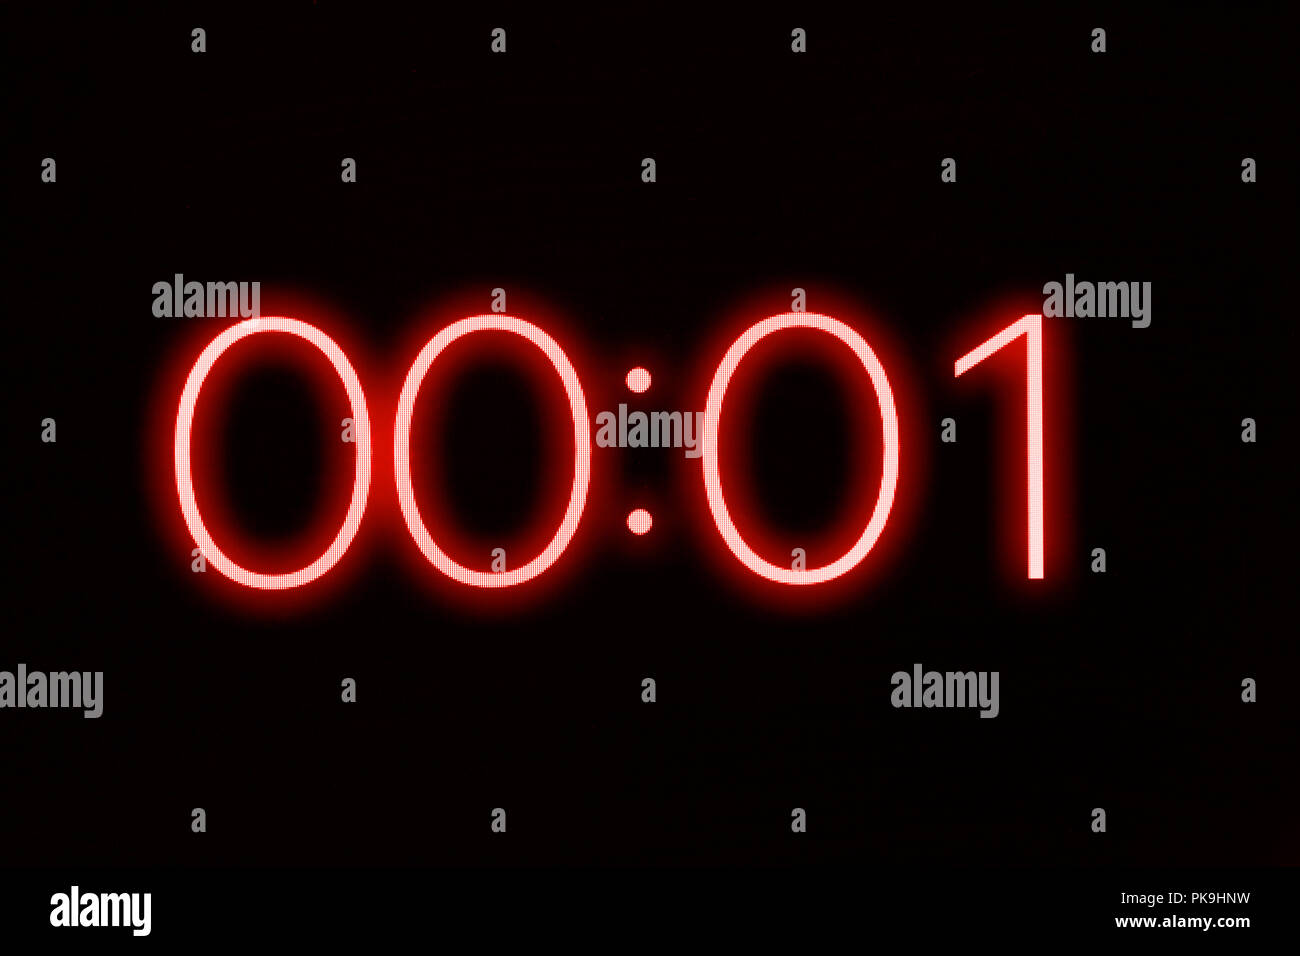 Digital clock timer stopwatch display showing 1 one second remaining. Emergency, urgency, out of time concept. Stock Photo